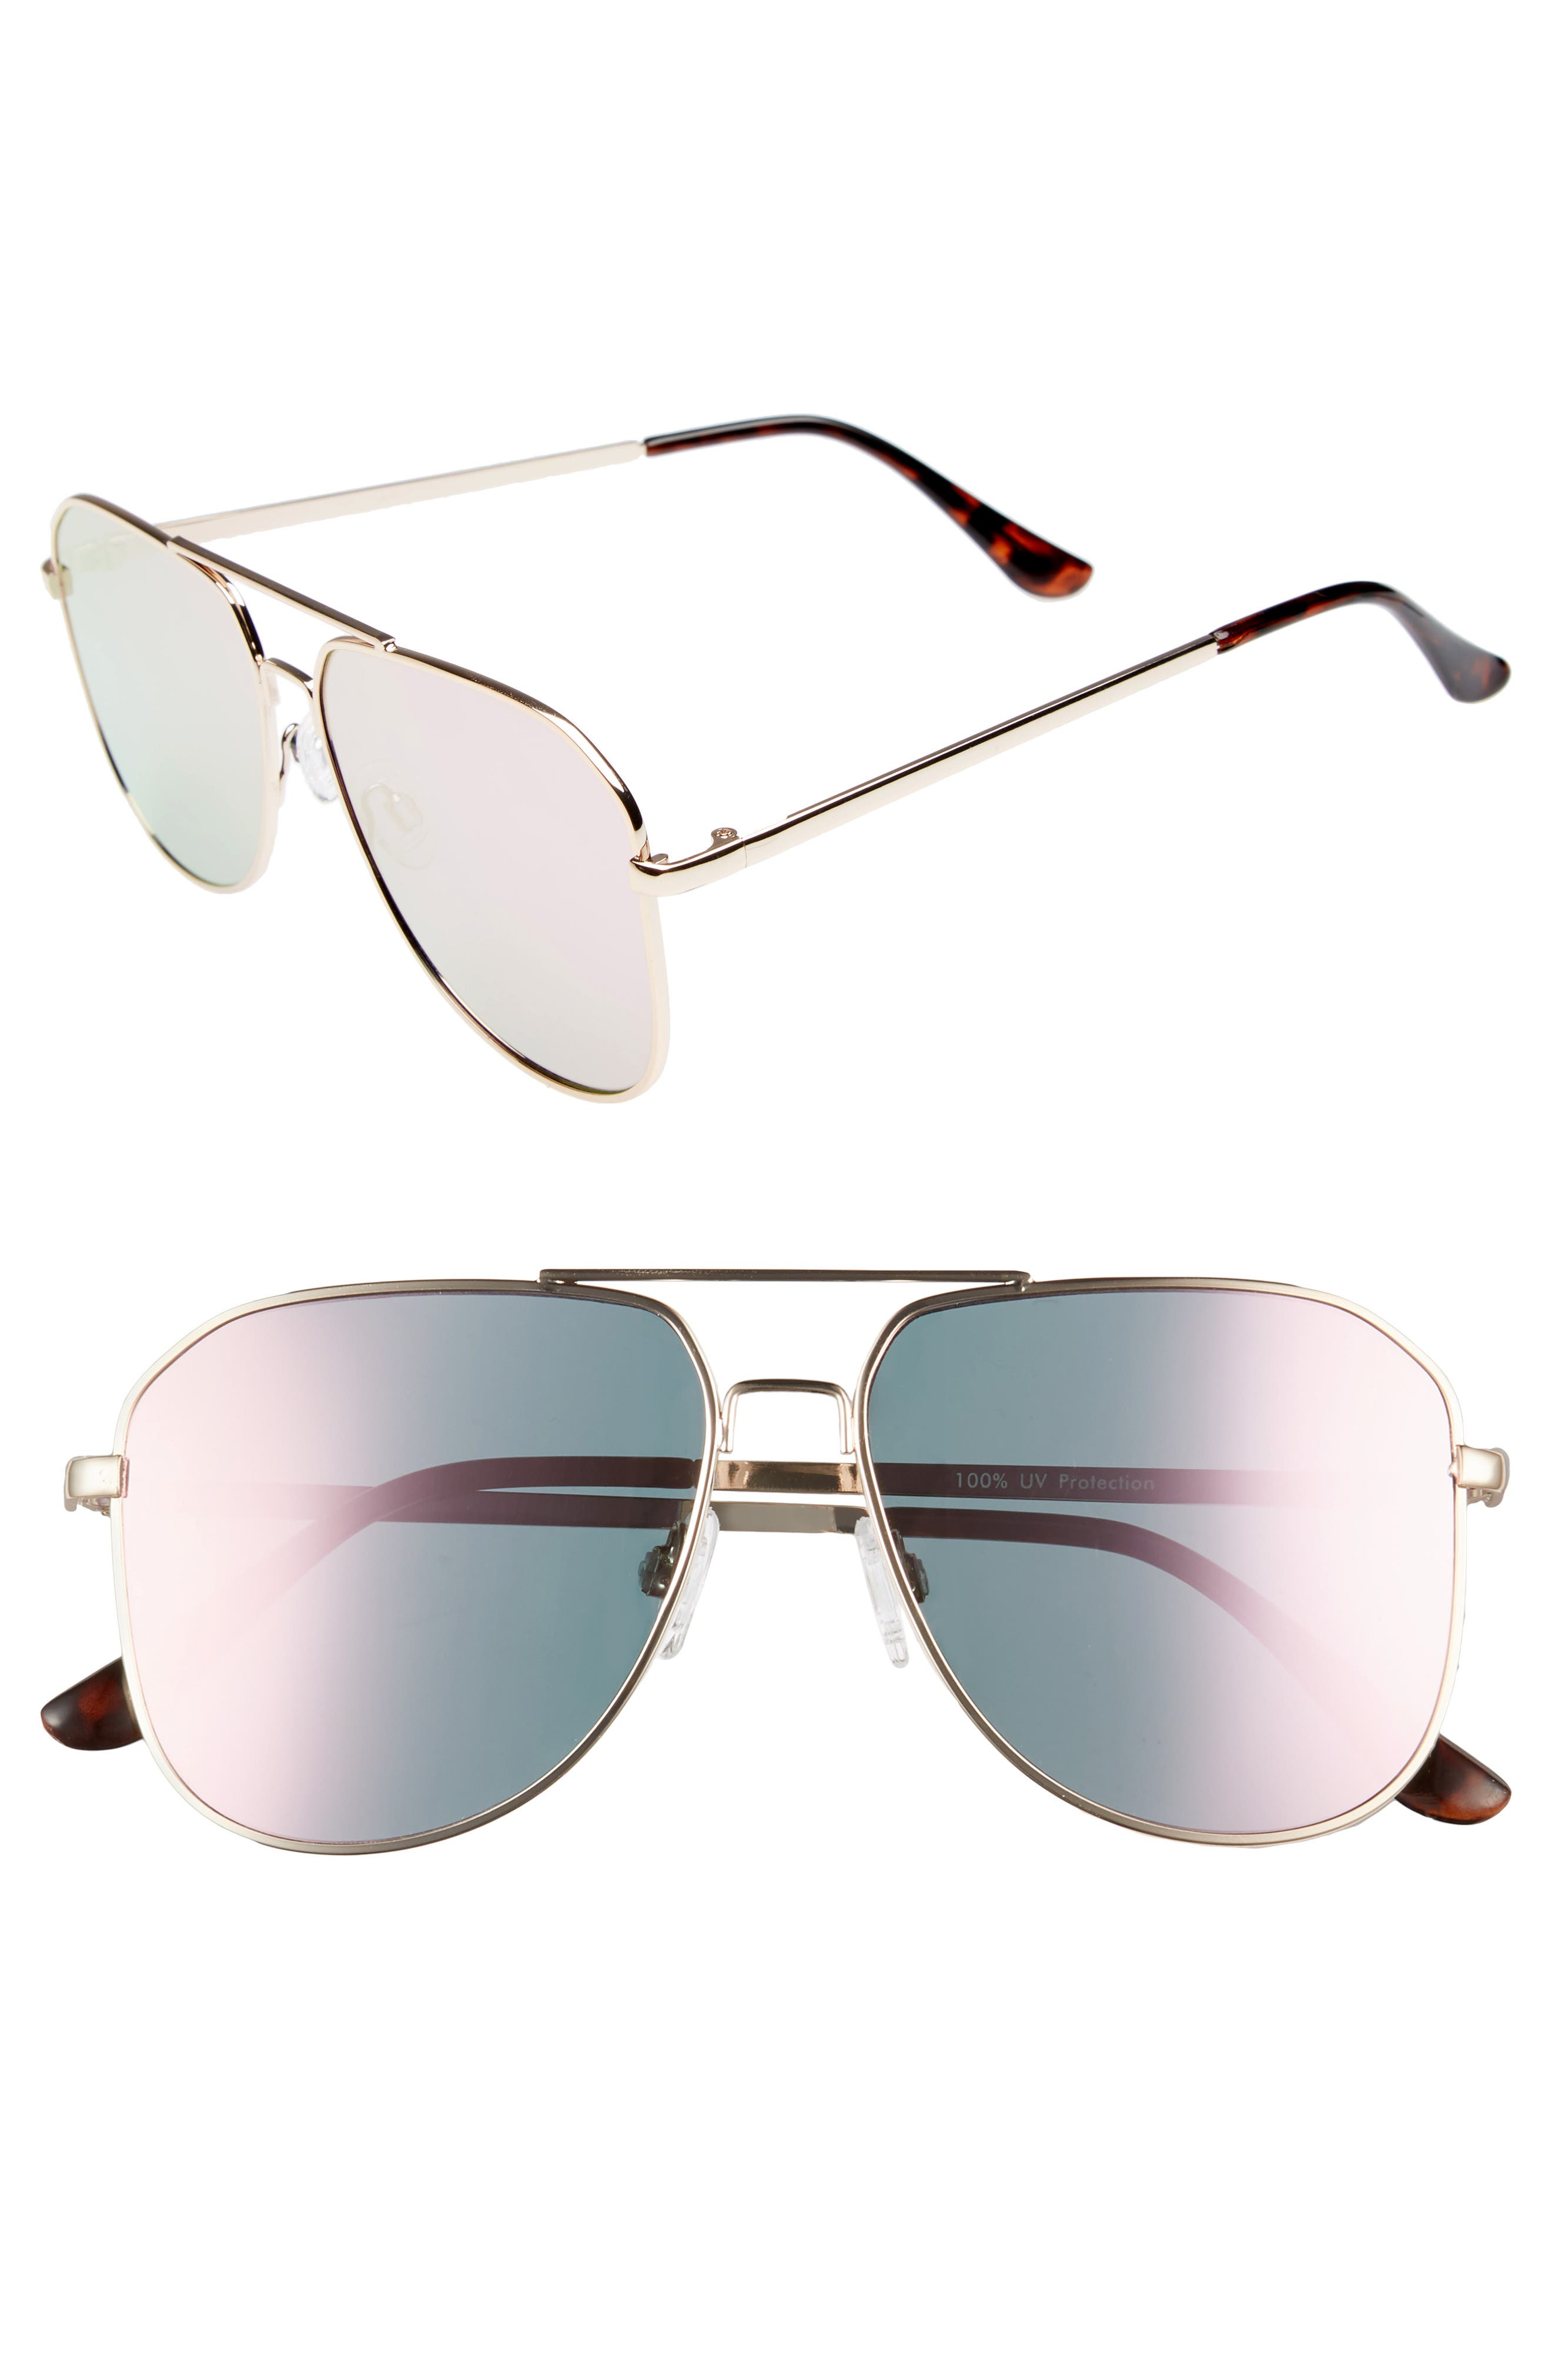 54mm Aviator Sunglasses,                             Main thumbnail 1, color,                             Gold/ Pink